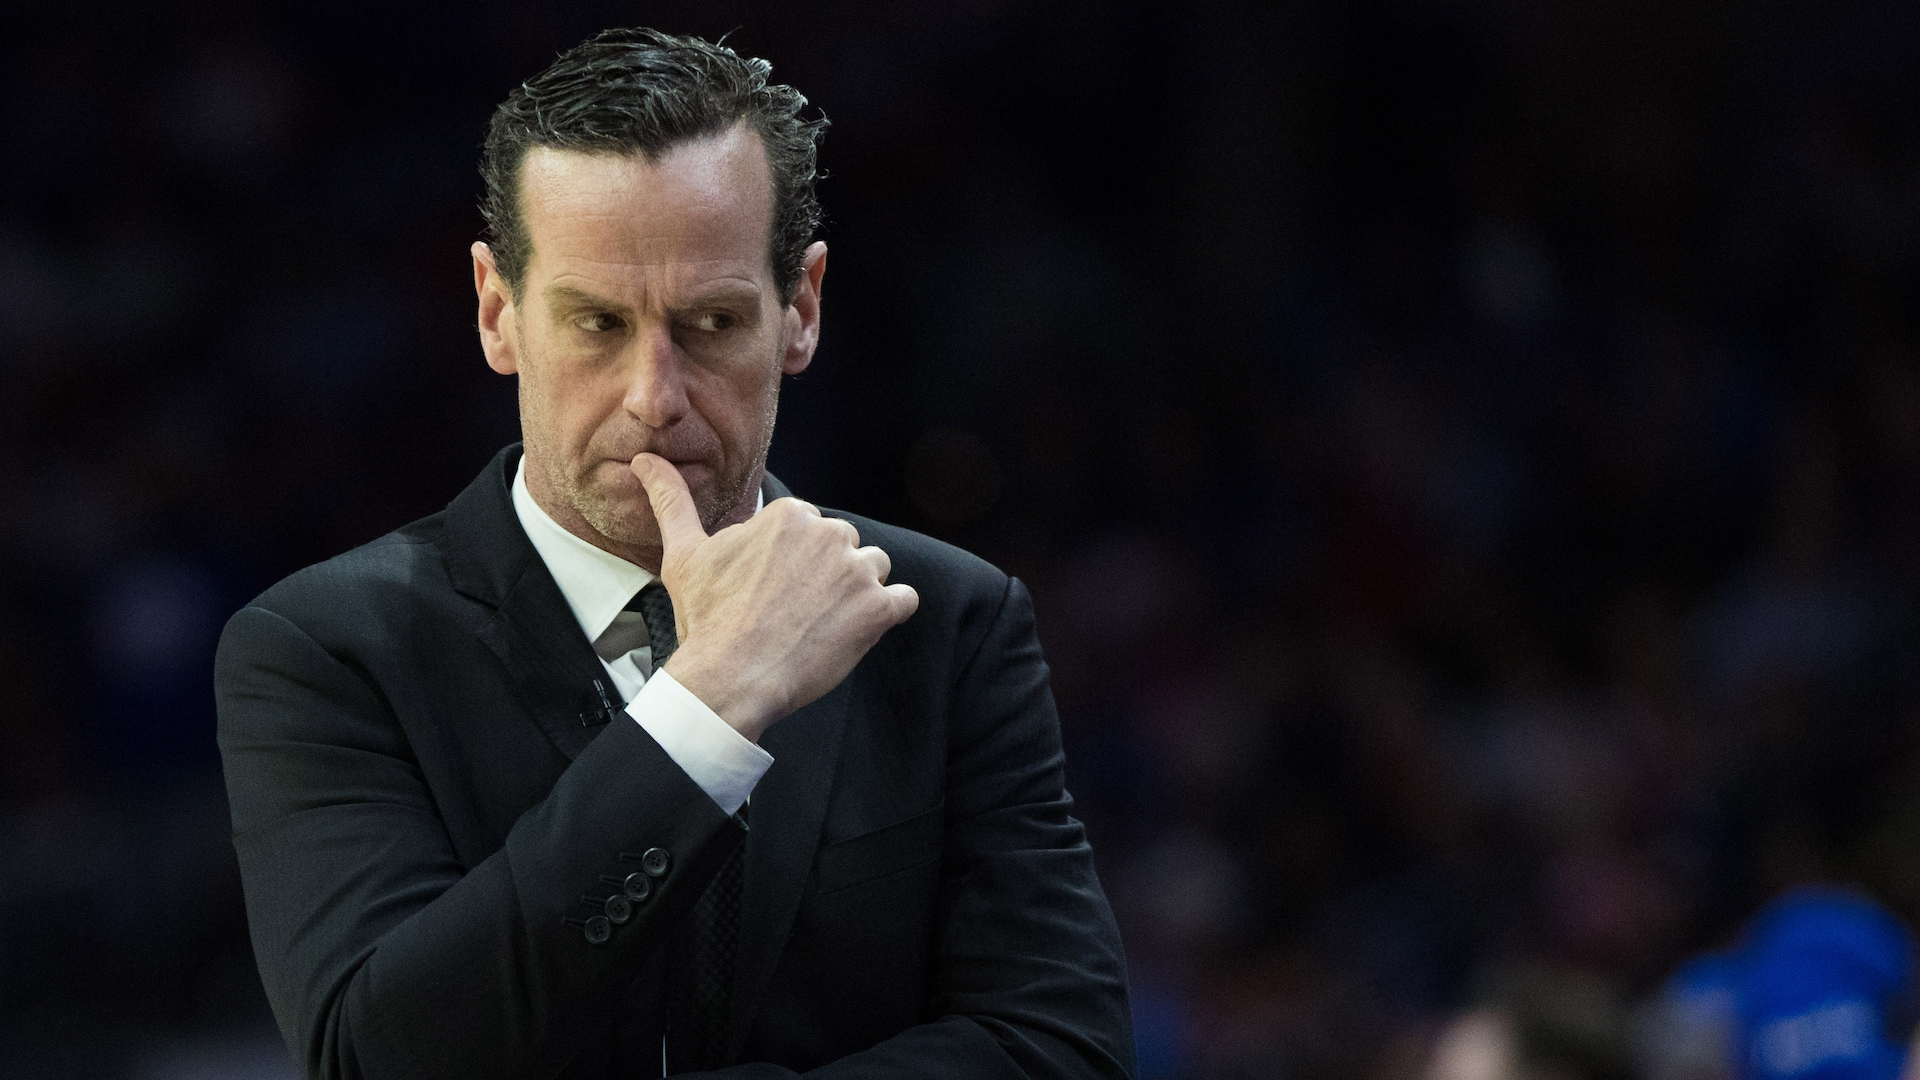 Brooklyn Nets, coach Kenny Atkinson mutually agree to part ways